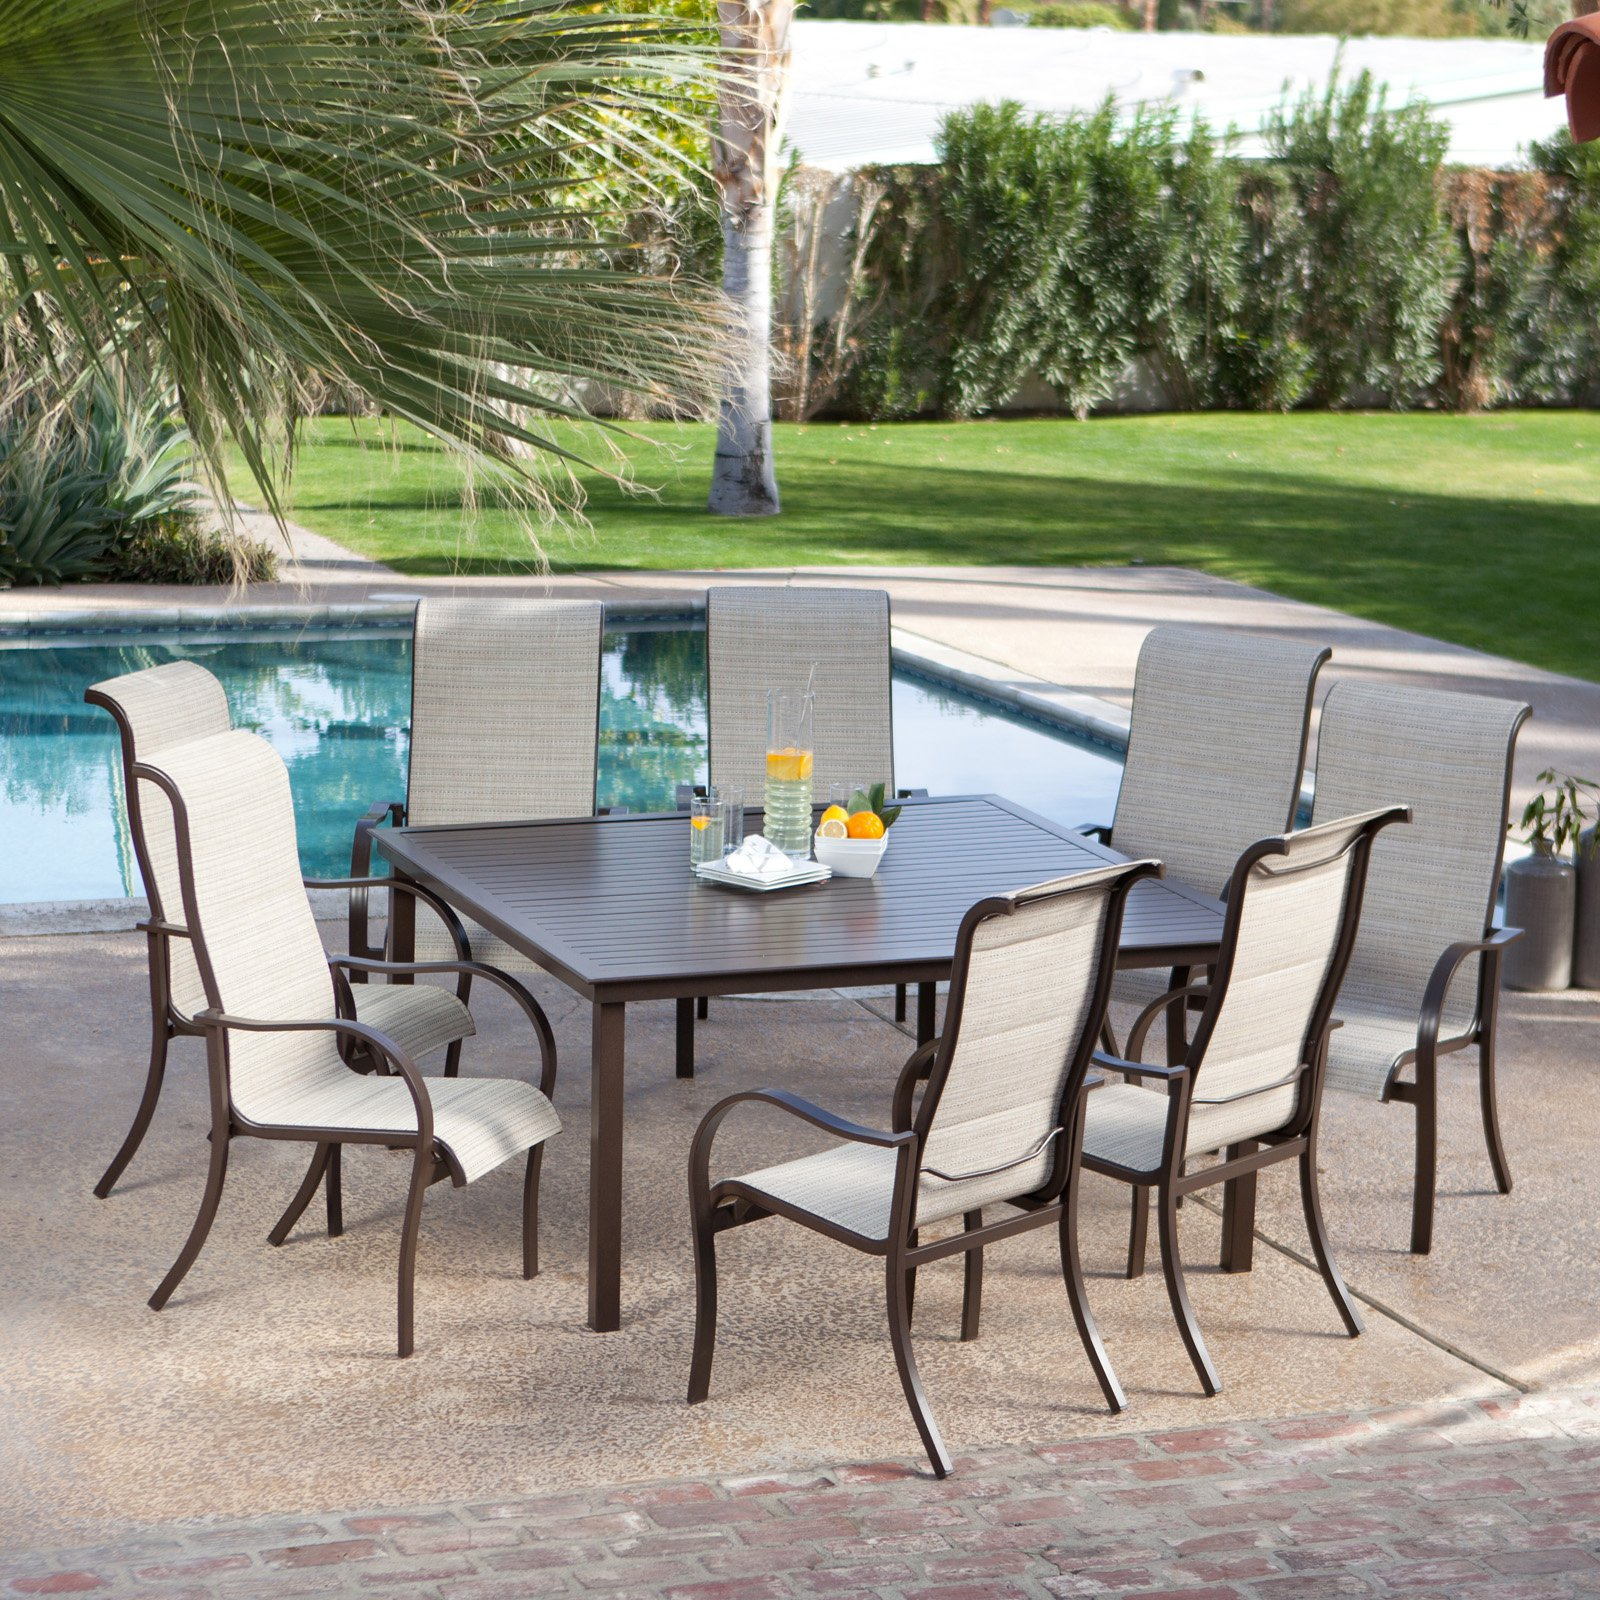 Square Seat Patio Table Patio Ideas - High square dining table for 8